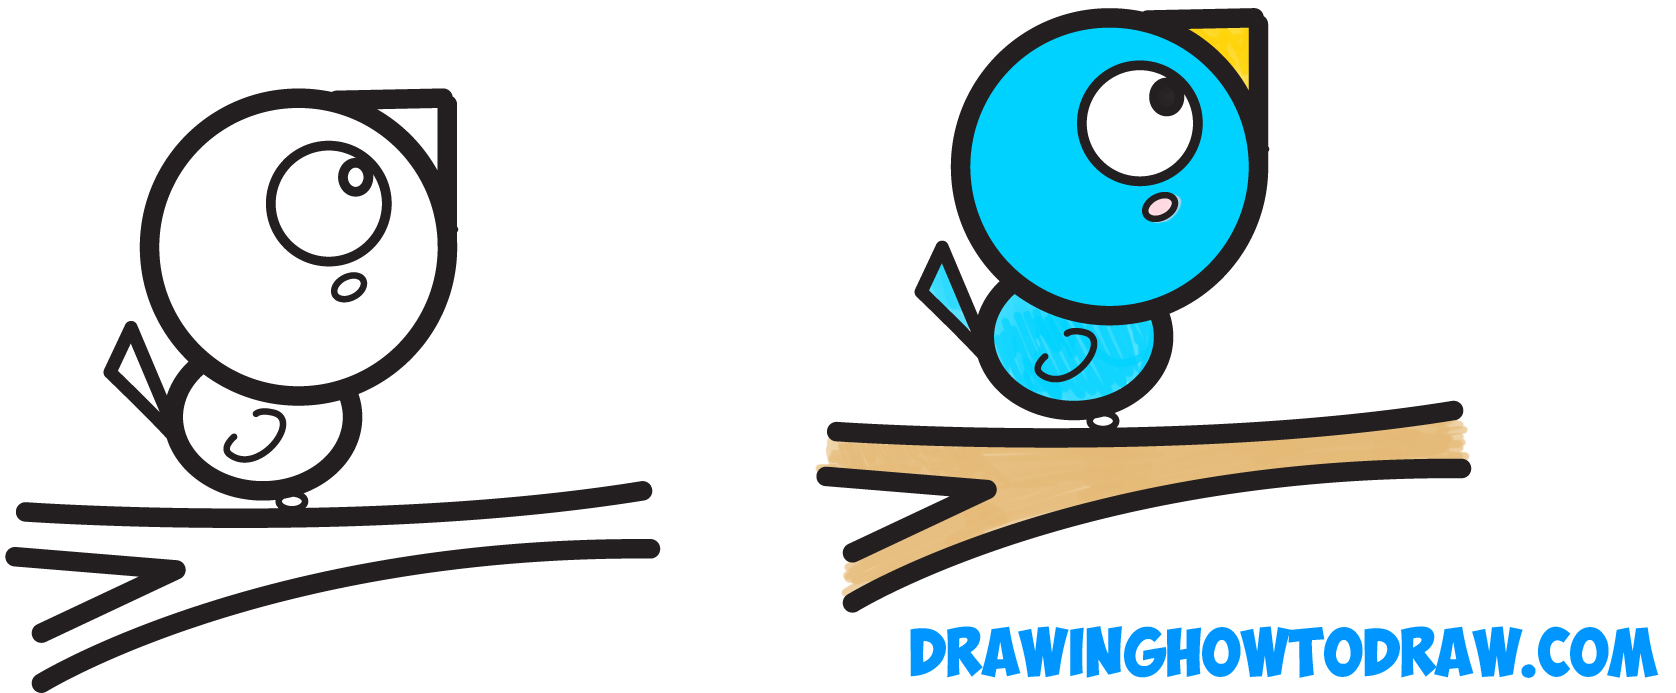 How To Draw A Bird On A Branch Easy For Kids Step By Step